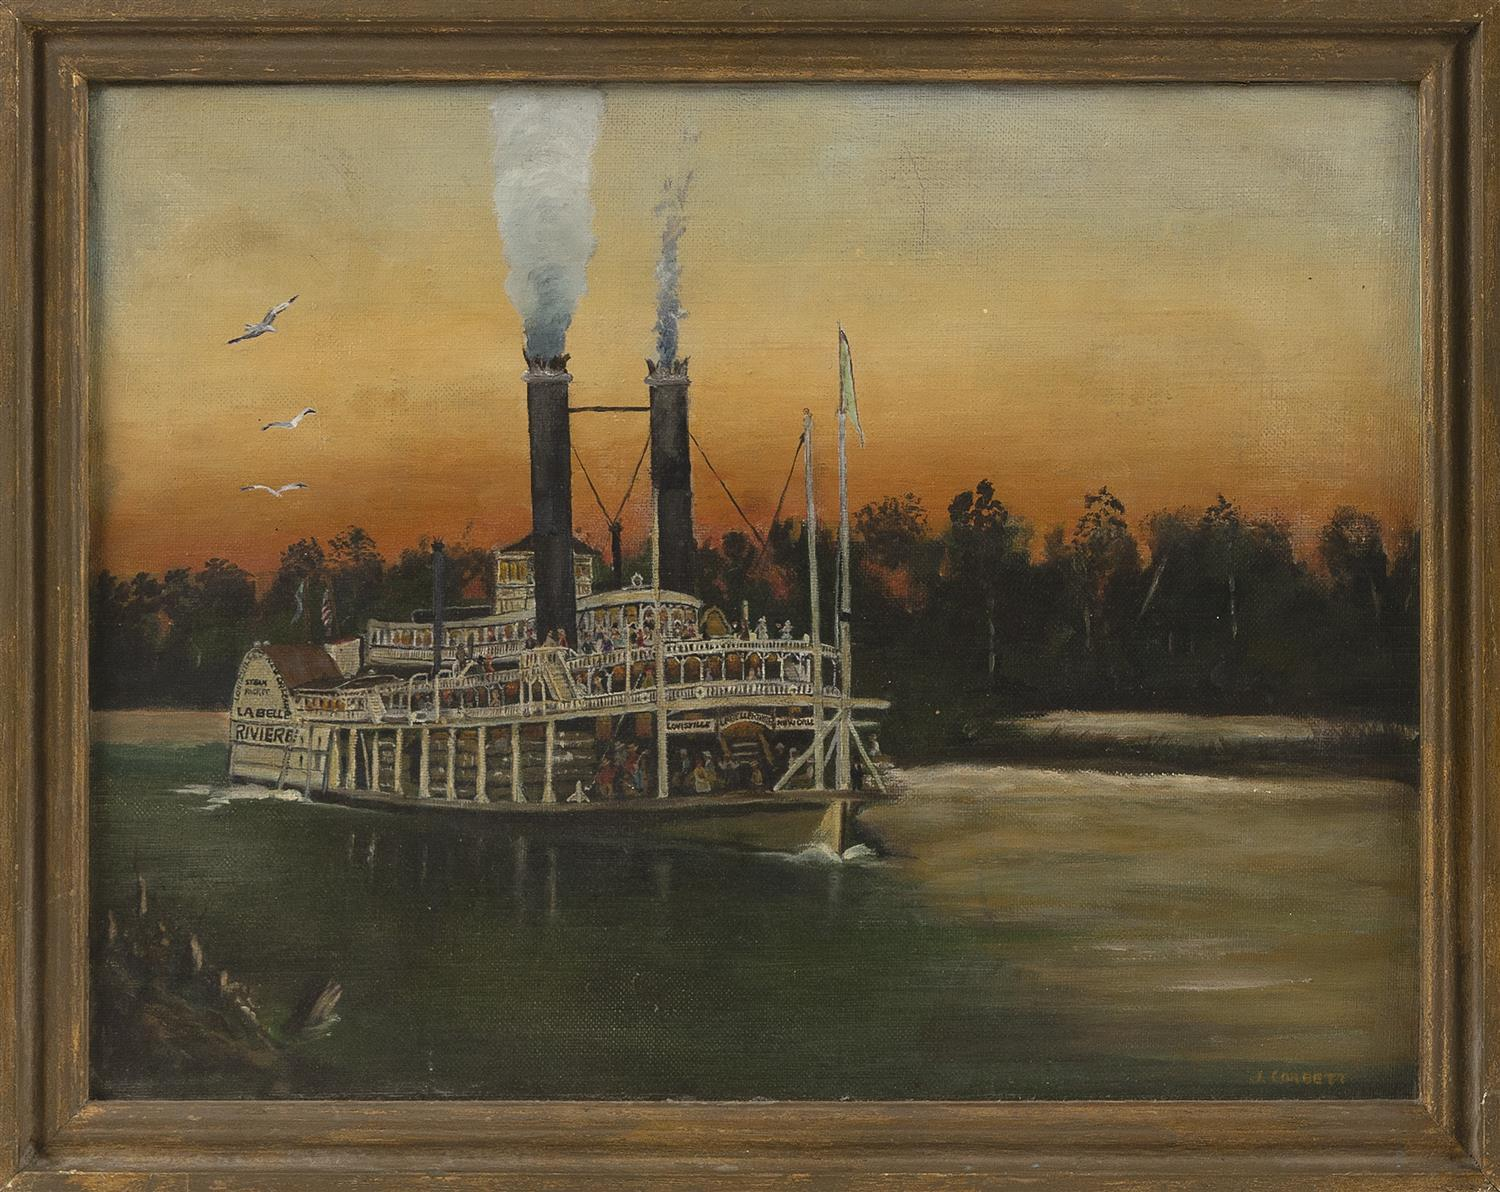 "PRIMITIVE PAINTING OF A STEAM PADDLEWHEELER Signed lower right ""J. Corbett"". Oil on artist board, 12"" x 16"". Framed 13.5"" x 17.5""."